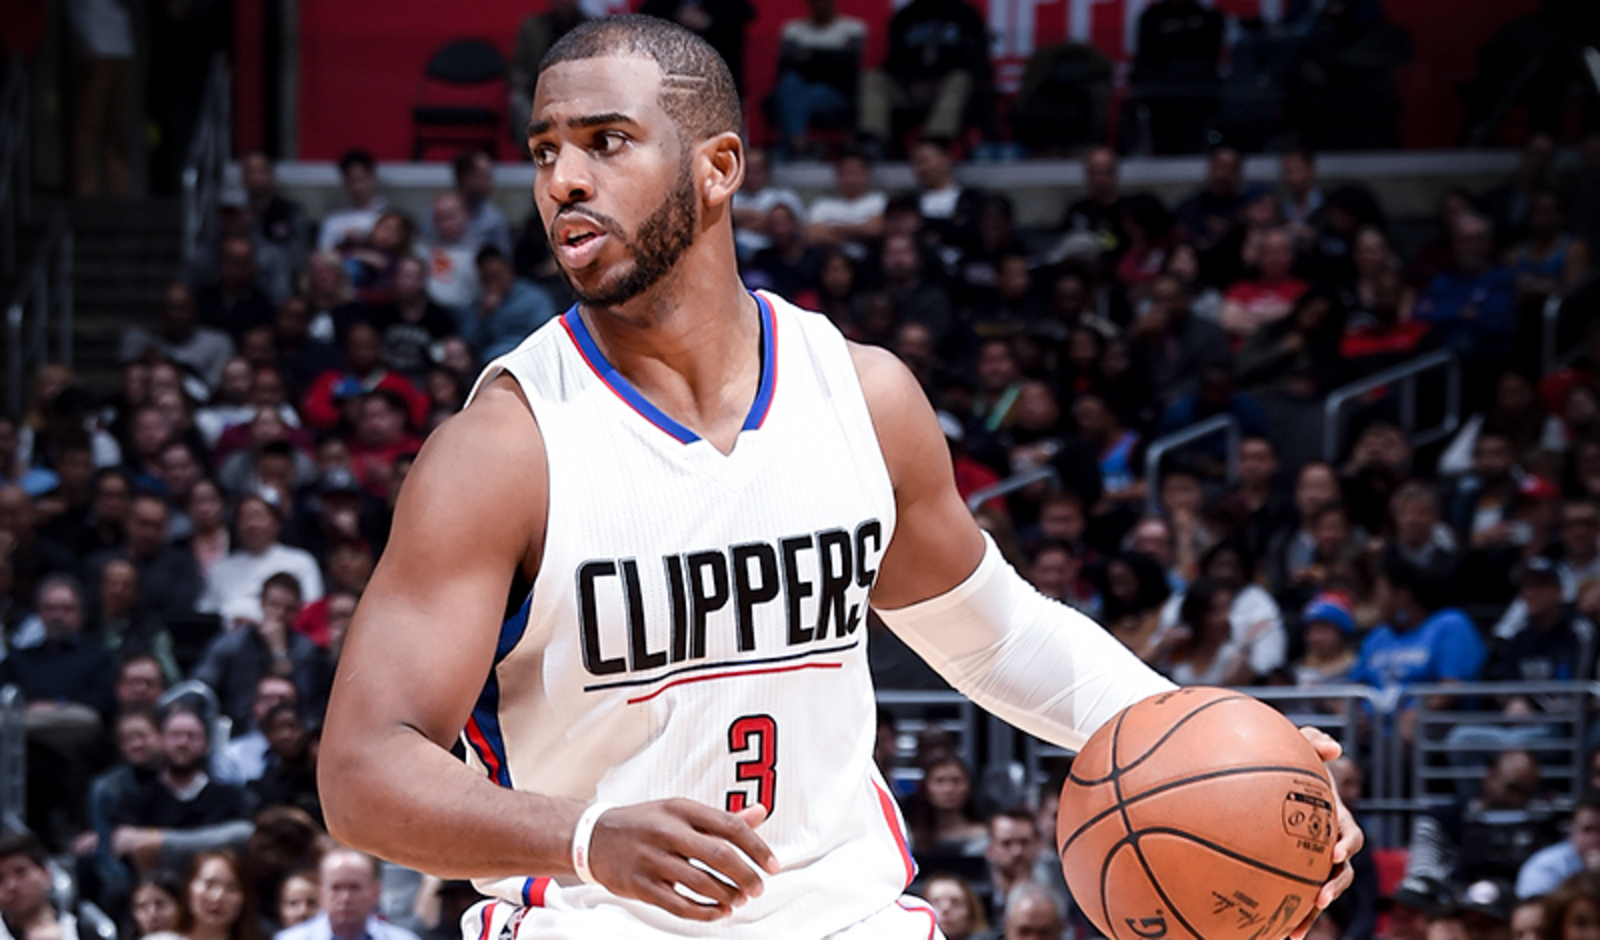 Chris Paul Out For Game With Sprained Left Thumb